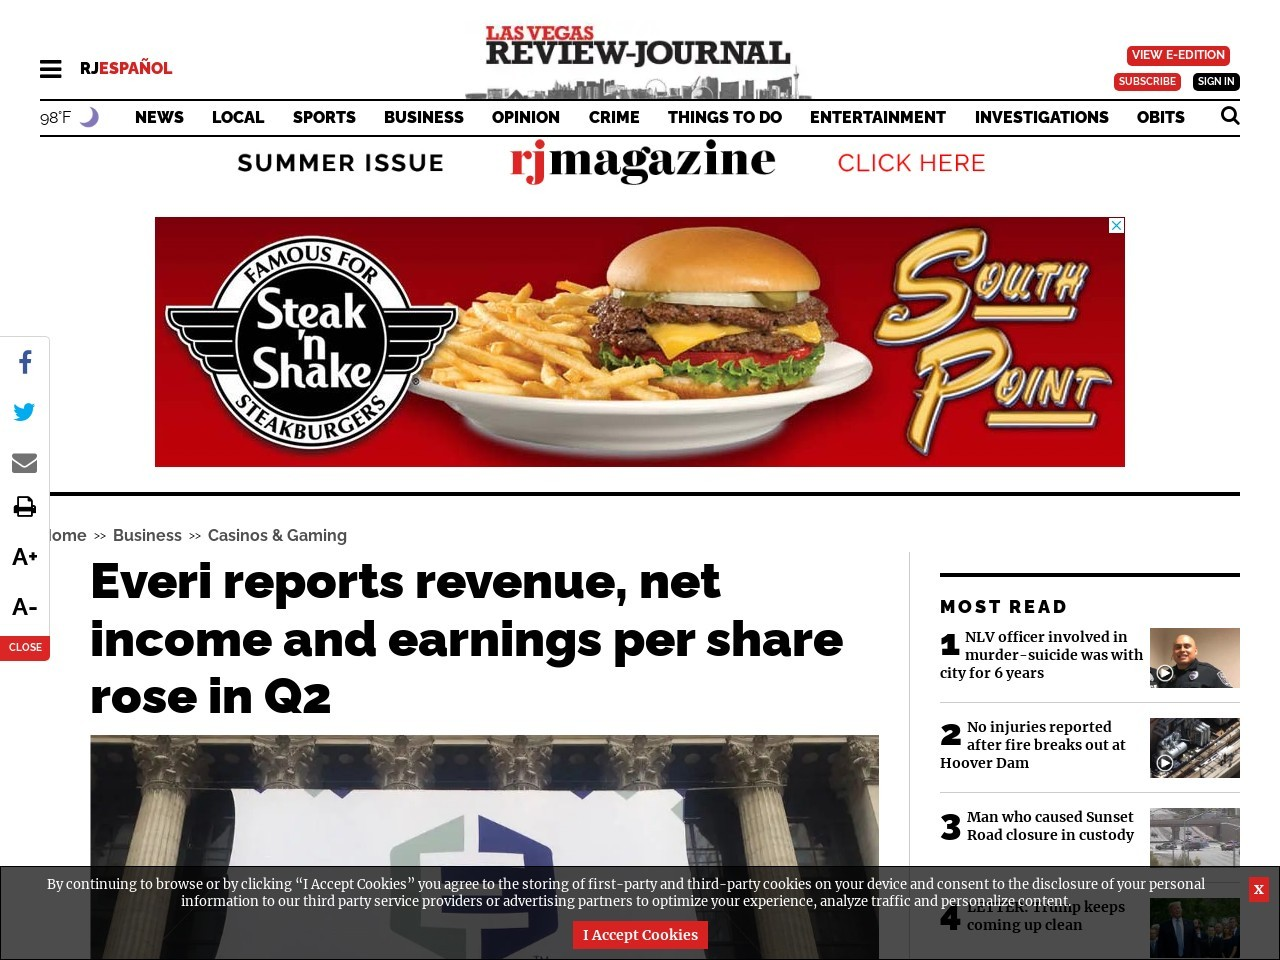 Everi reports revenue, net income and earnings per share rose in Q2